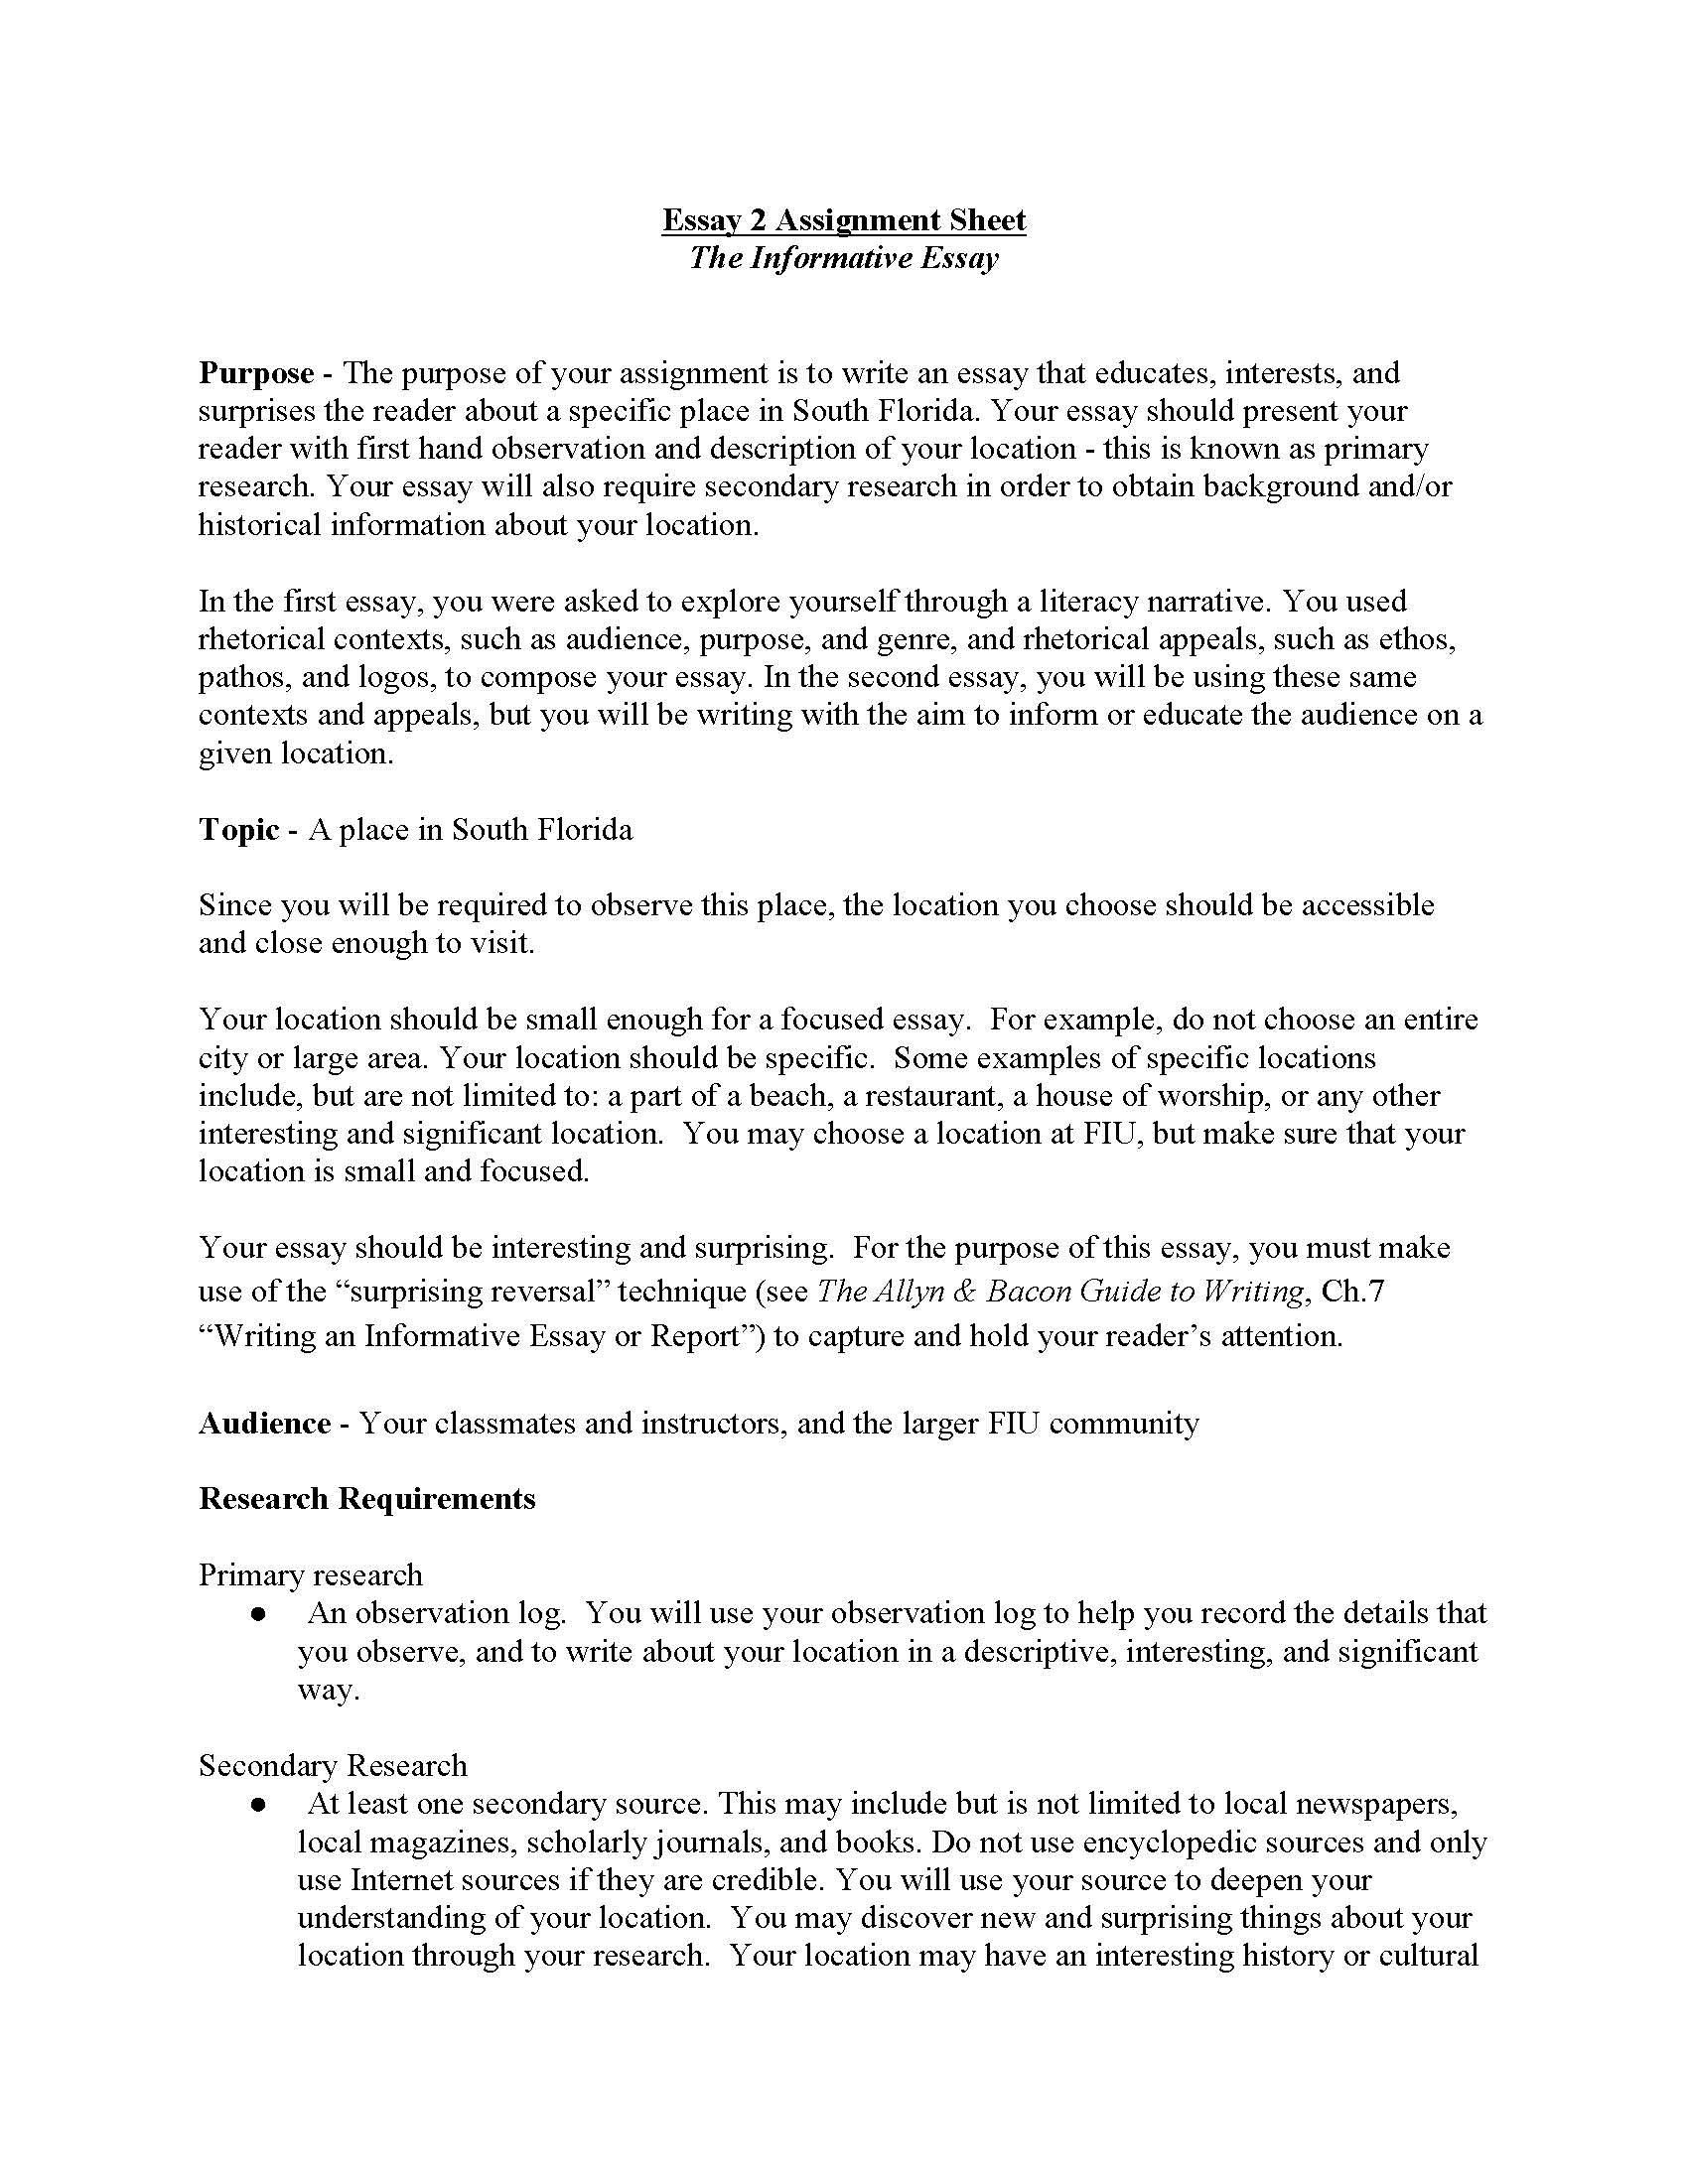 002 Essay Example Informative Topics Unit Assignment Page 1 Remarkable 2018 Prompts For High School Prompt 4th Grade Full